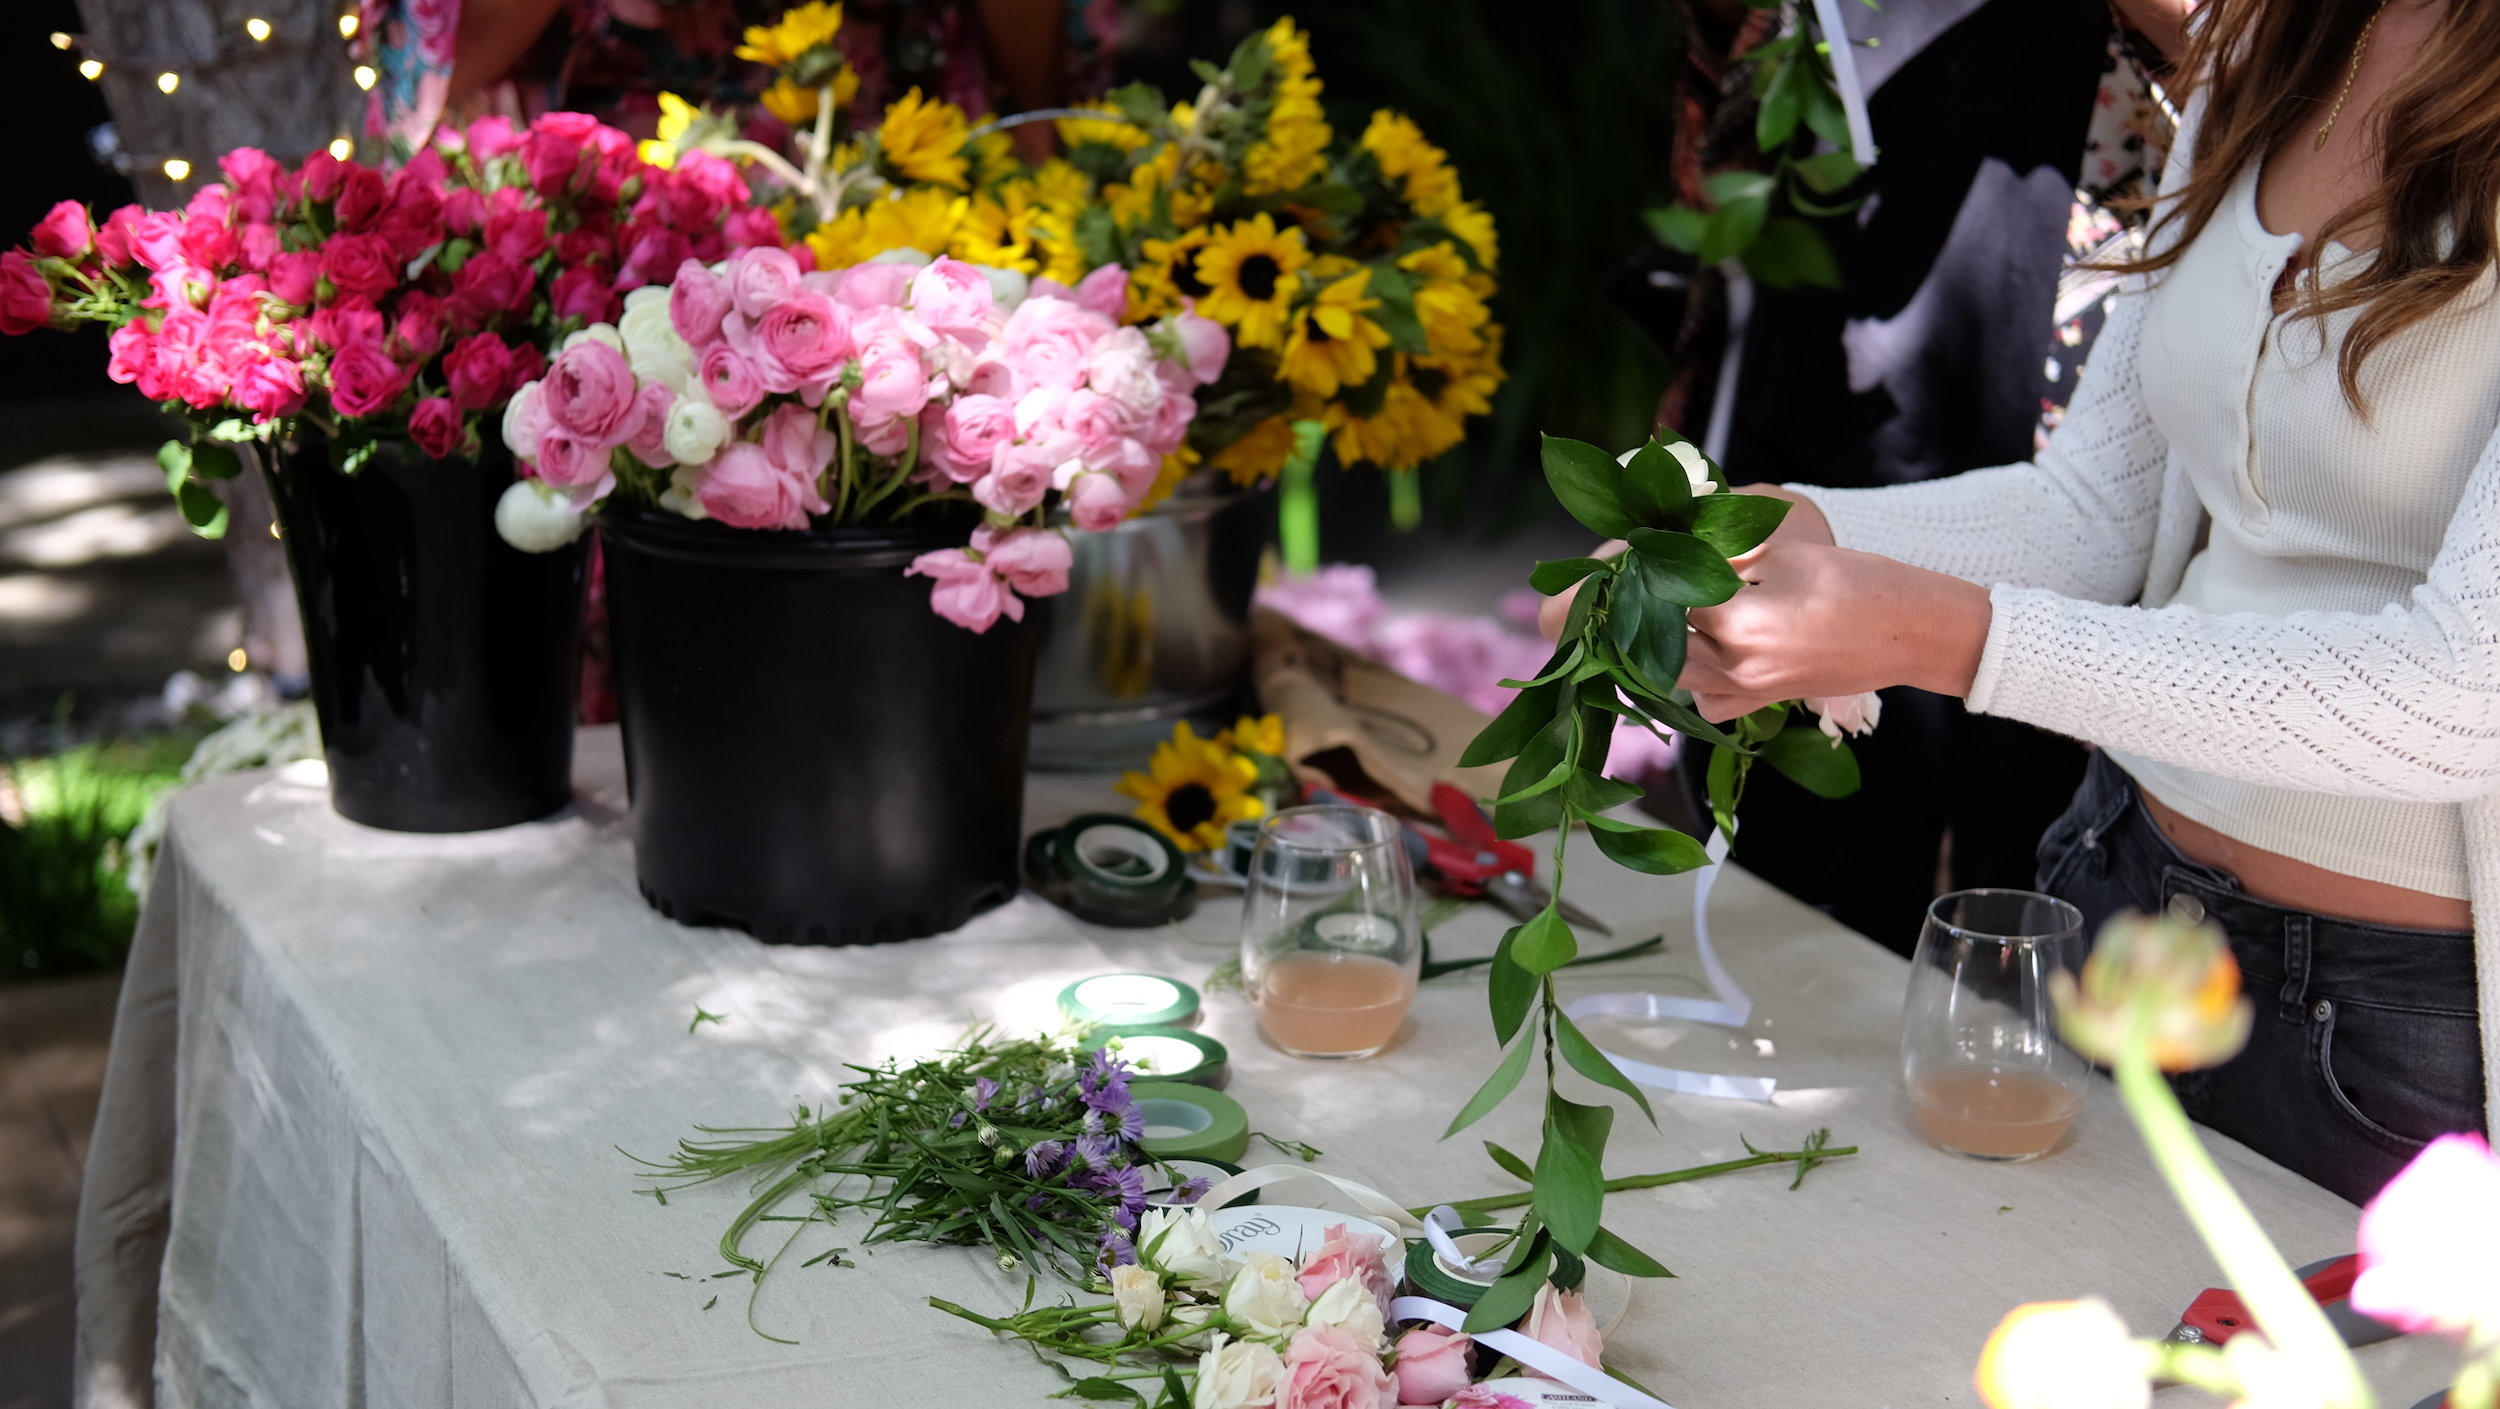 Florist Preparing Flowers For A Vase